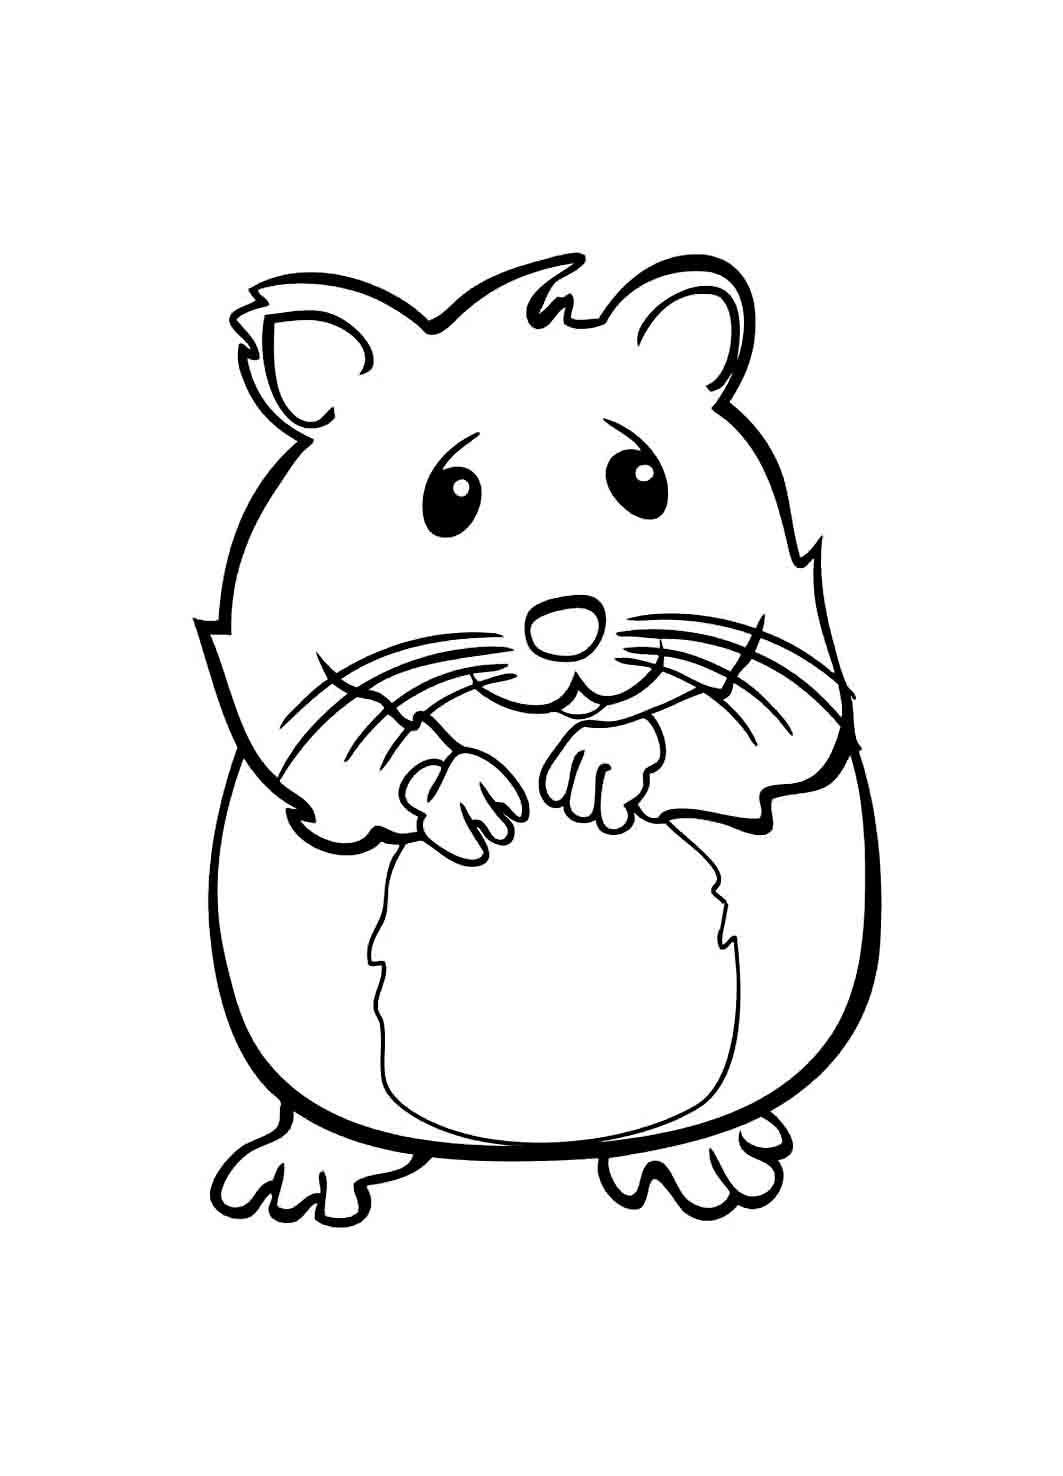 Zhu_Pet_Coloring_Pages_01